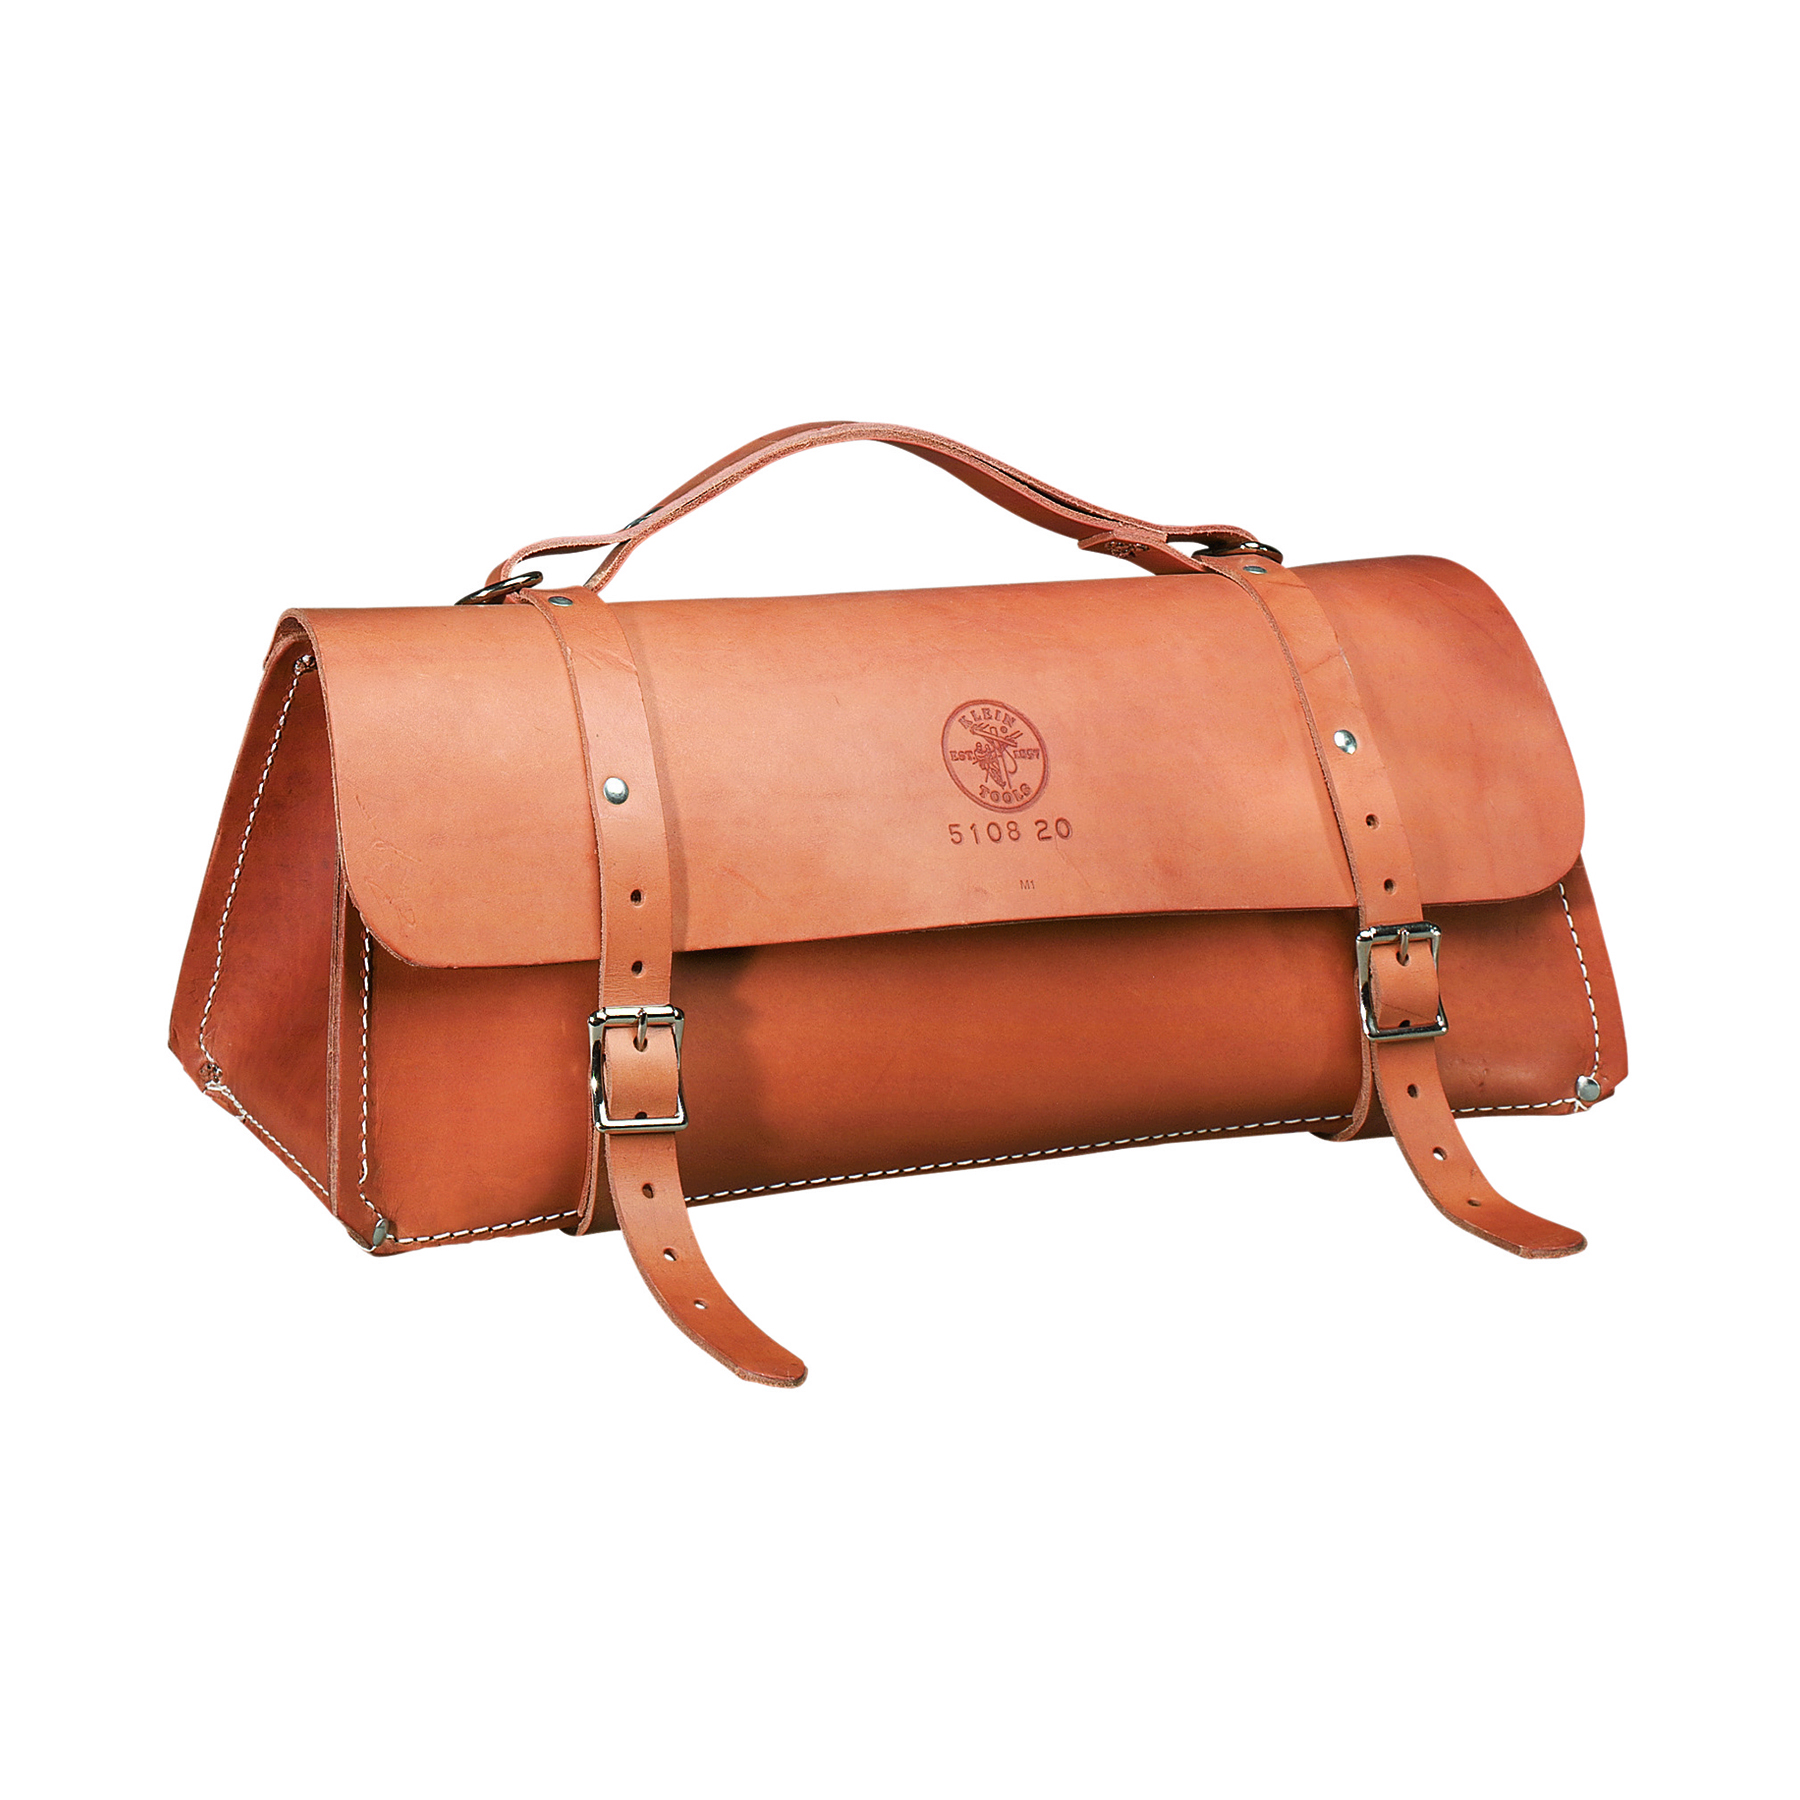 Deluxe Leather Bag 24 Inch 5108 24 Klein Tools For